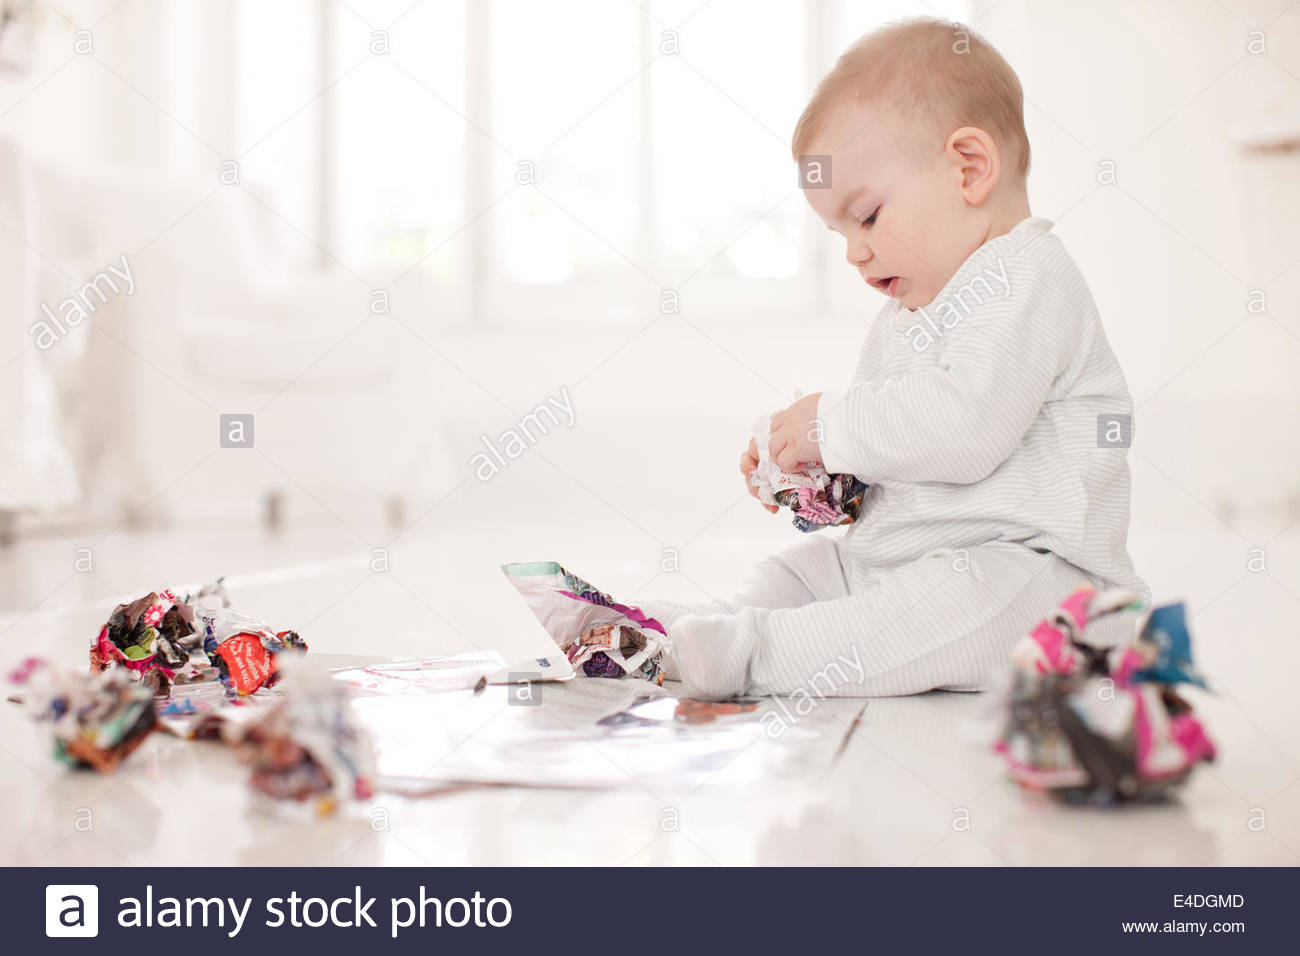 Baby on floor with crumpled paper - Stock Image